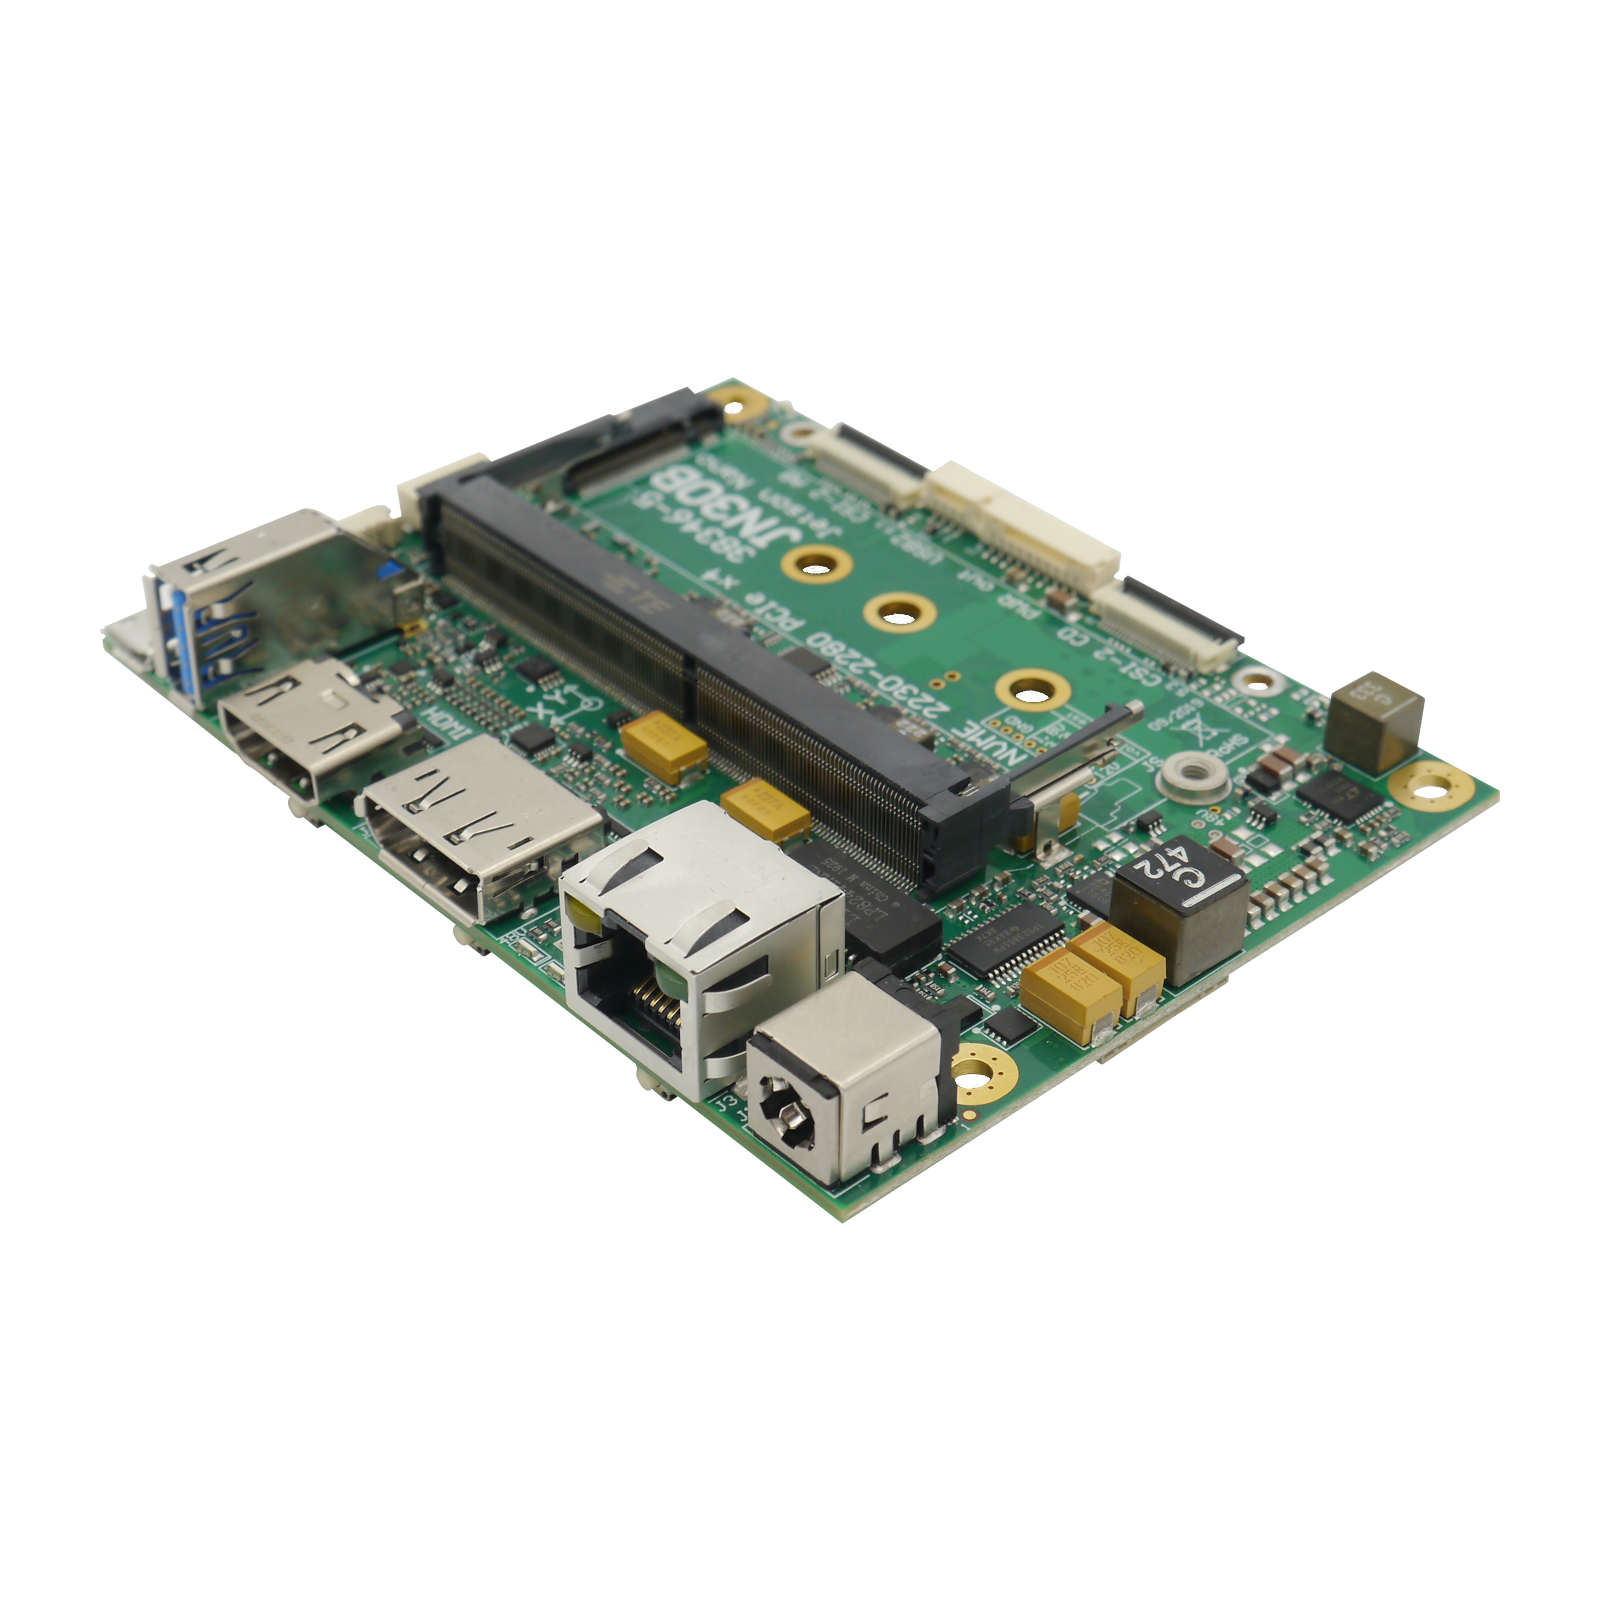 Jetson Nano carrier board